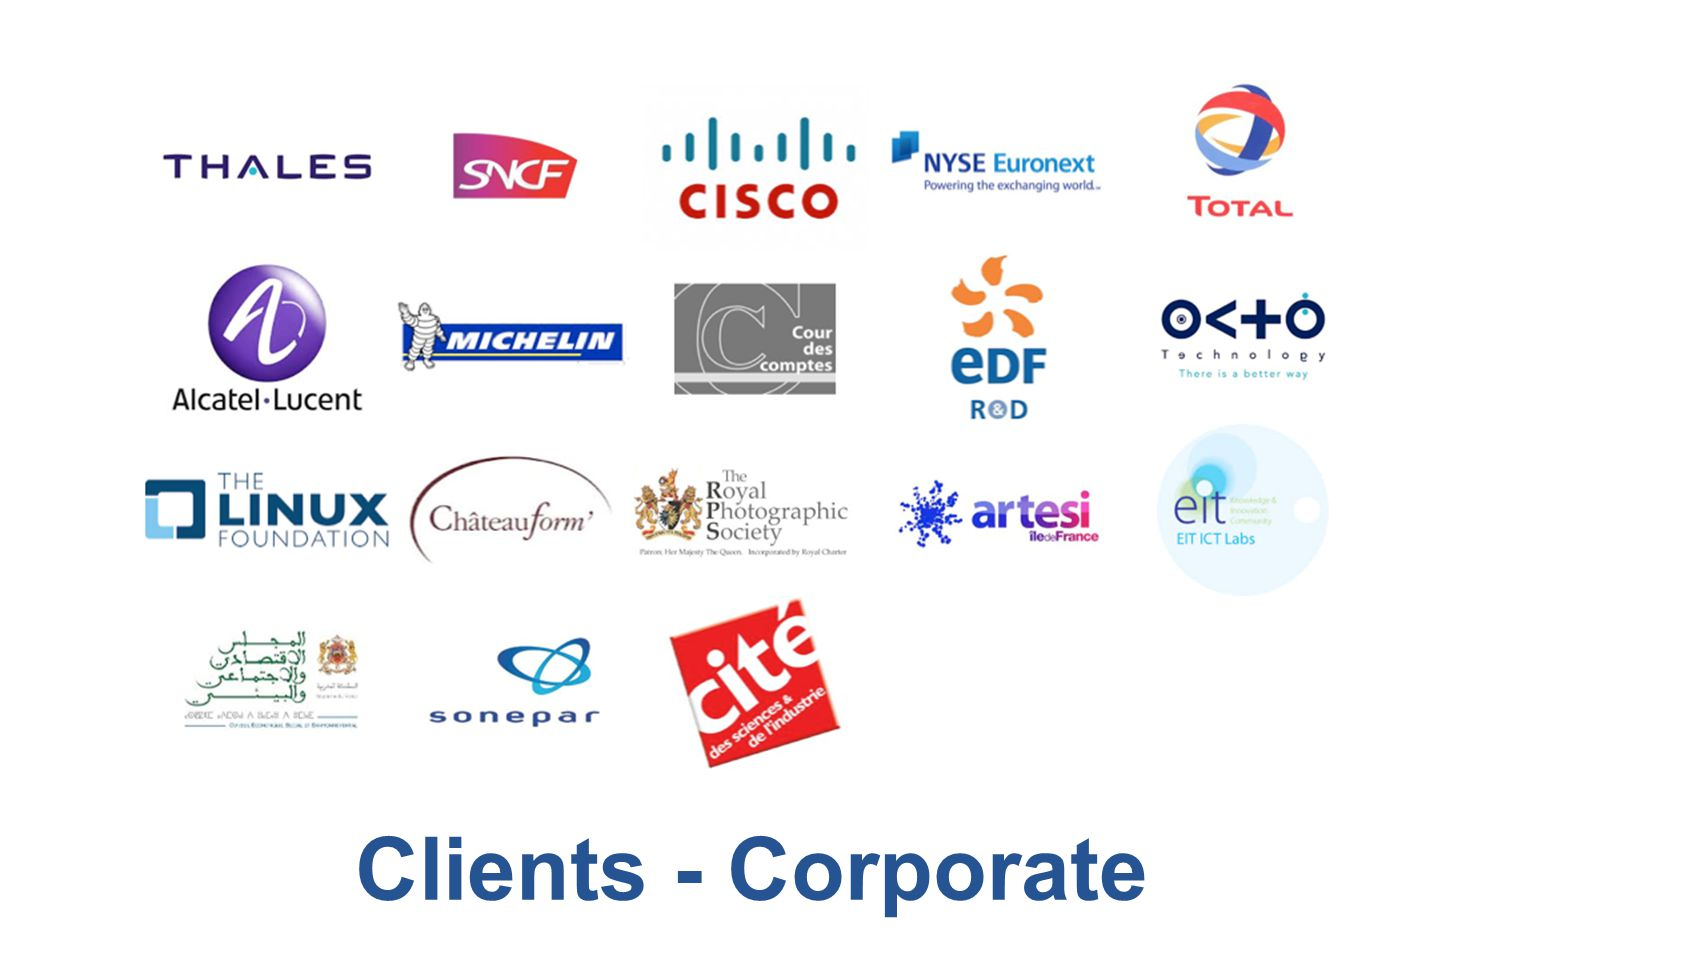 Clients - Corporate